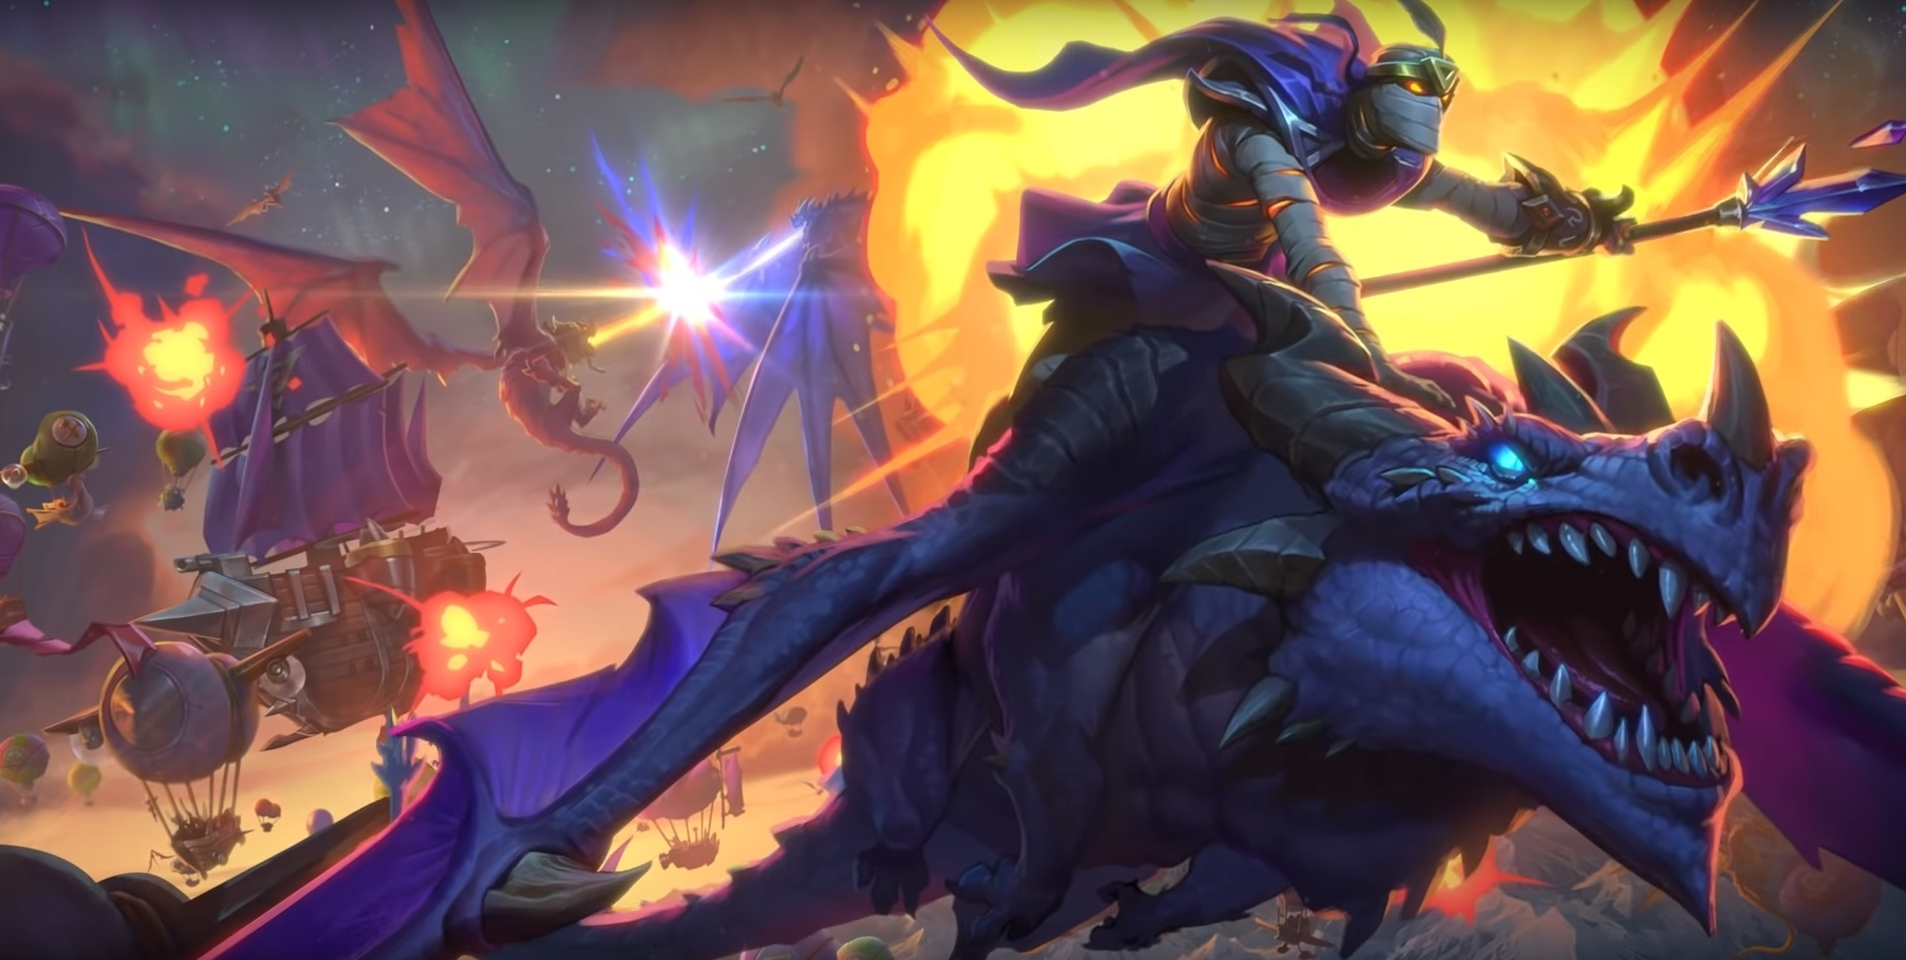 August Ayala, Lead Card Designer of Hearthstone, Announces Plans for a Future Balance Patch Towards Galakrond